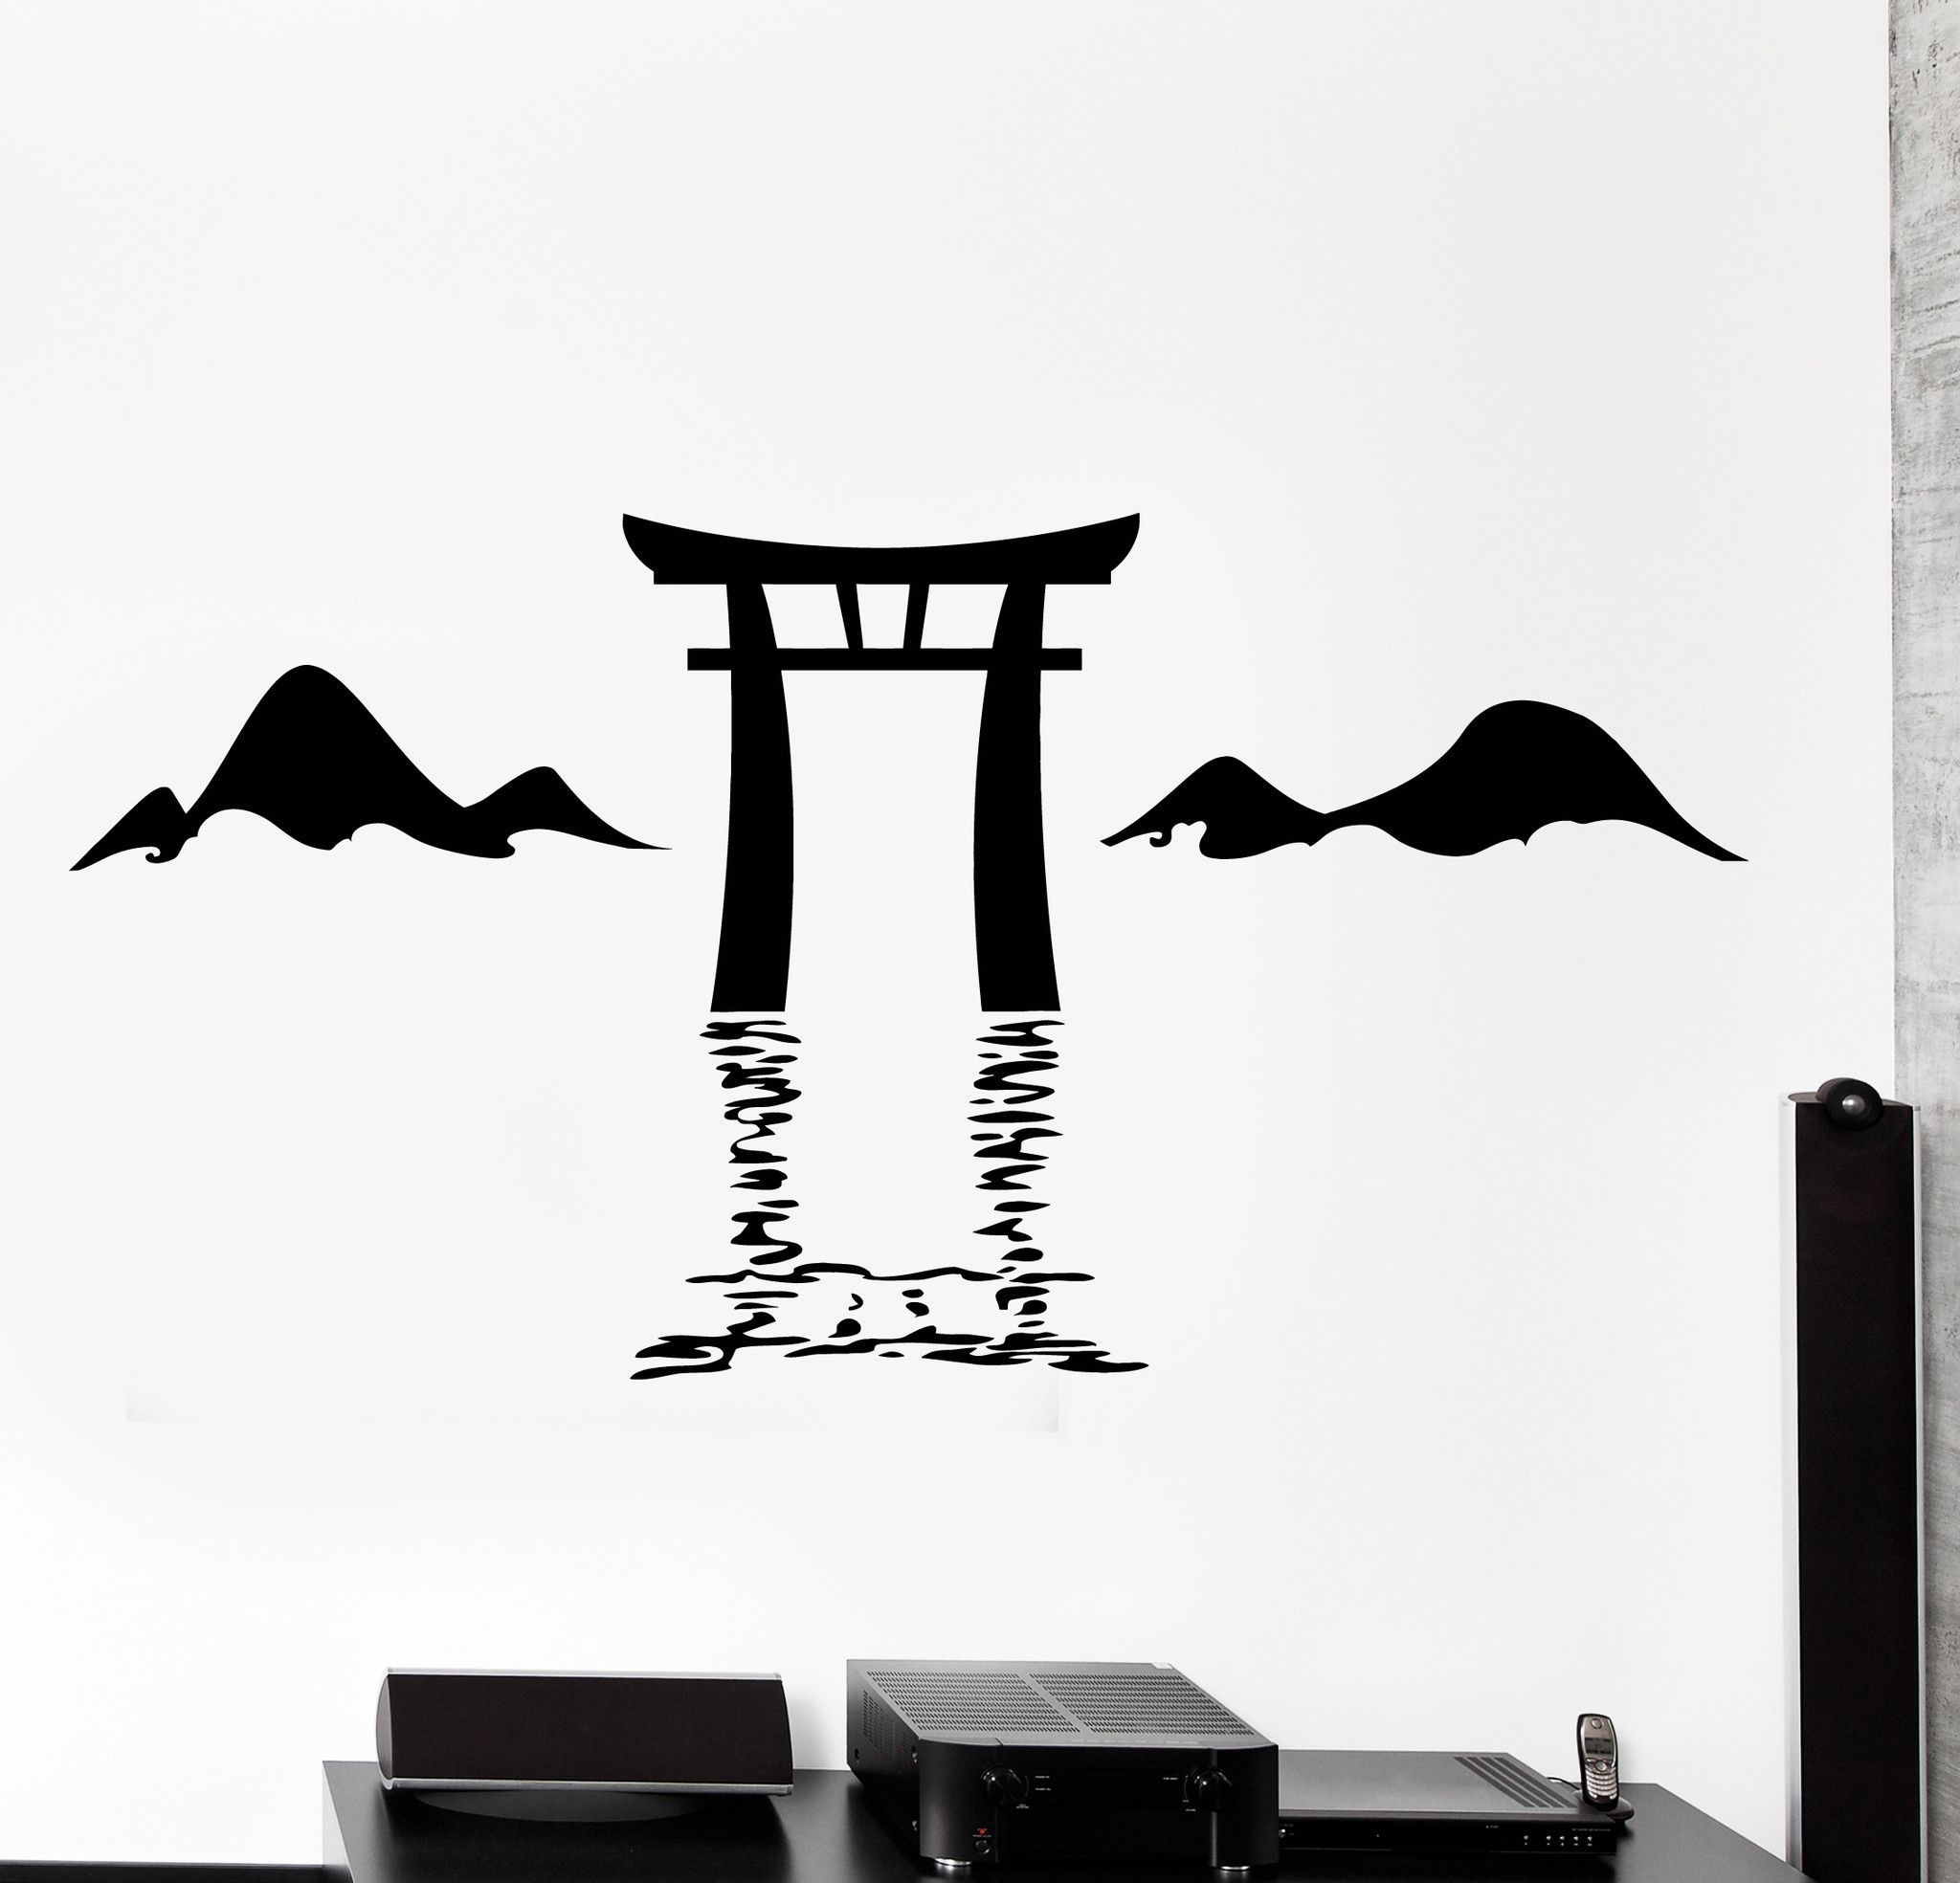 Wall vinyl decal torii itsukushima shrine japan japanese gates home decor z4437